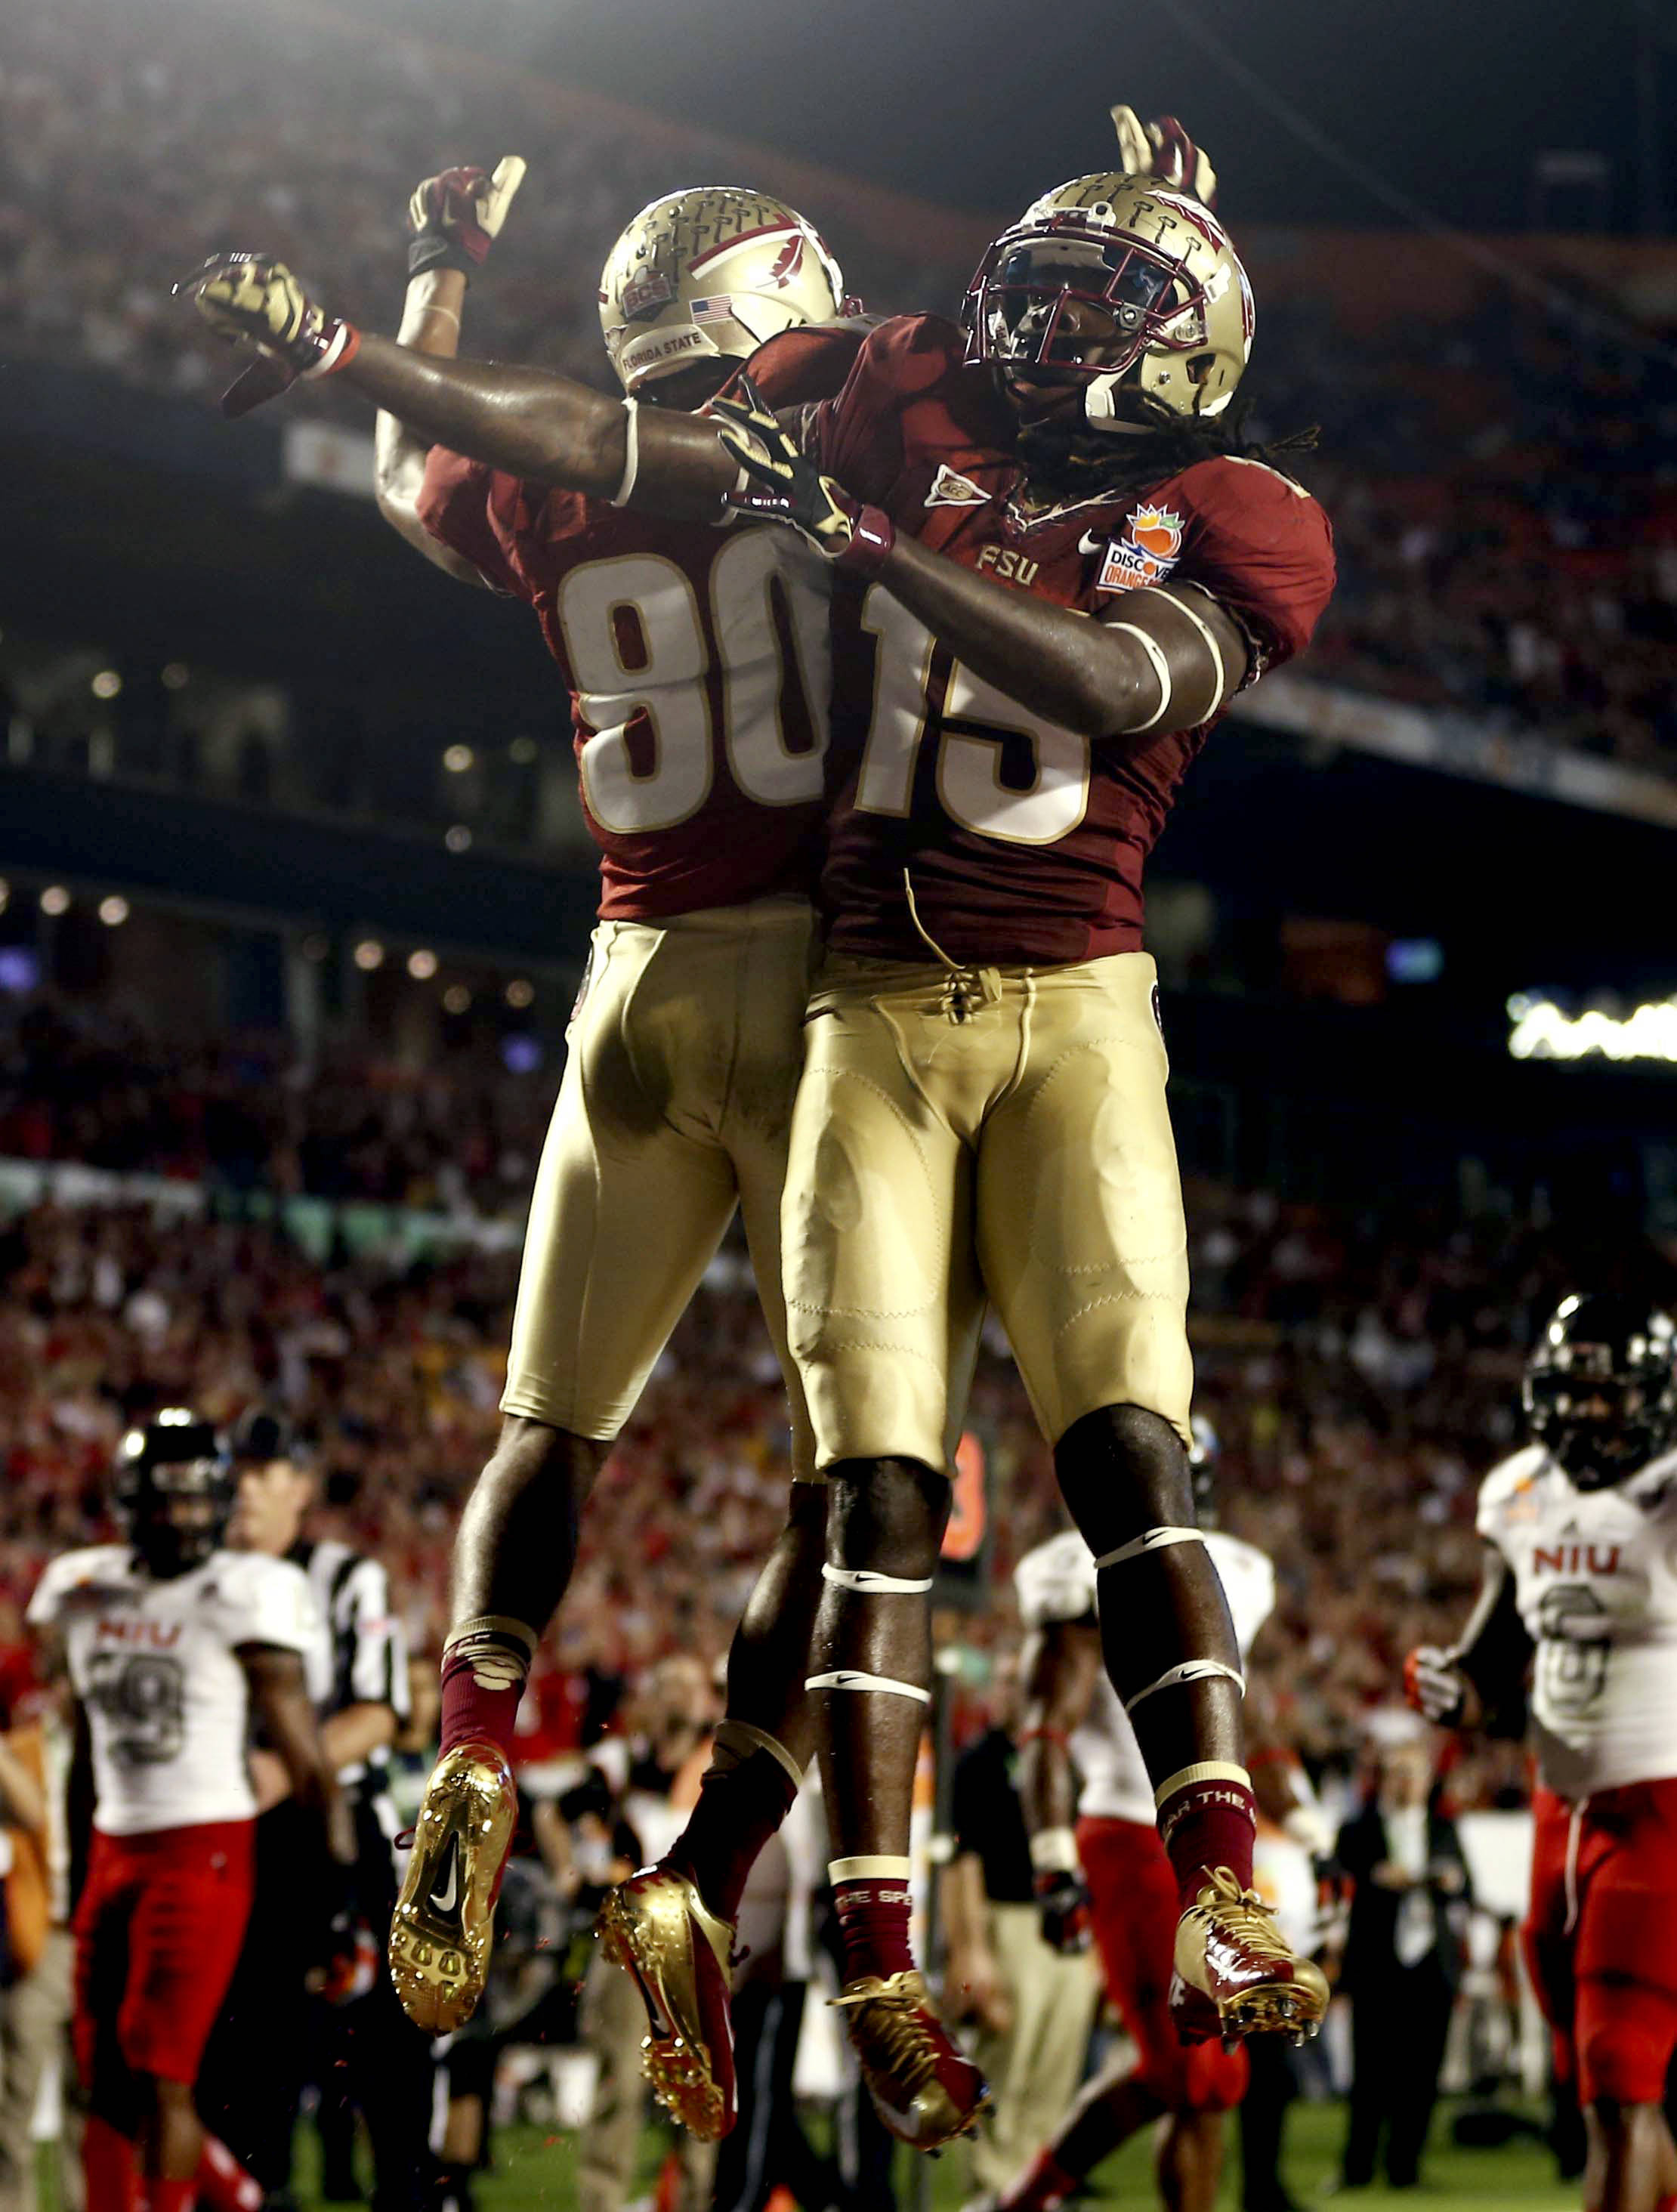 Florida State wide receivers Greg Dent (15) and Rashad Greene (80) celebrate after Greene scored a touchdown during the first half of the Orange Bowl NCAA college football game against Northern Illinois, Tuesday, Jan. 1, 2013, in Miami. (AP Photo/J Pat Carter)